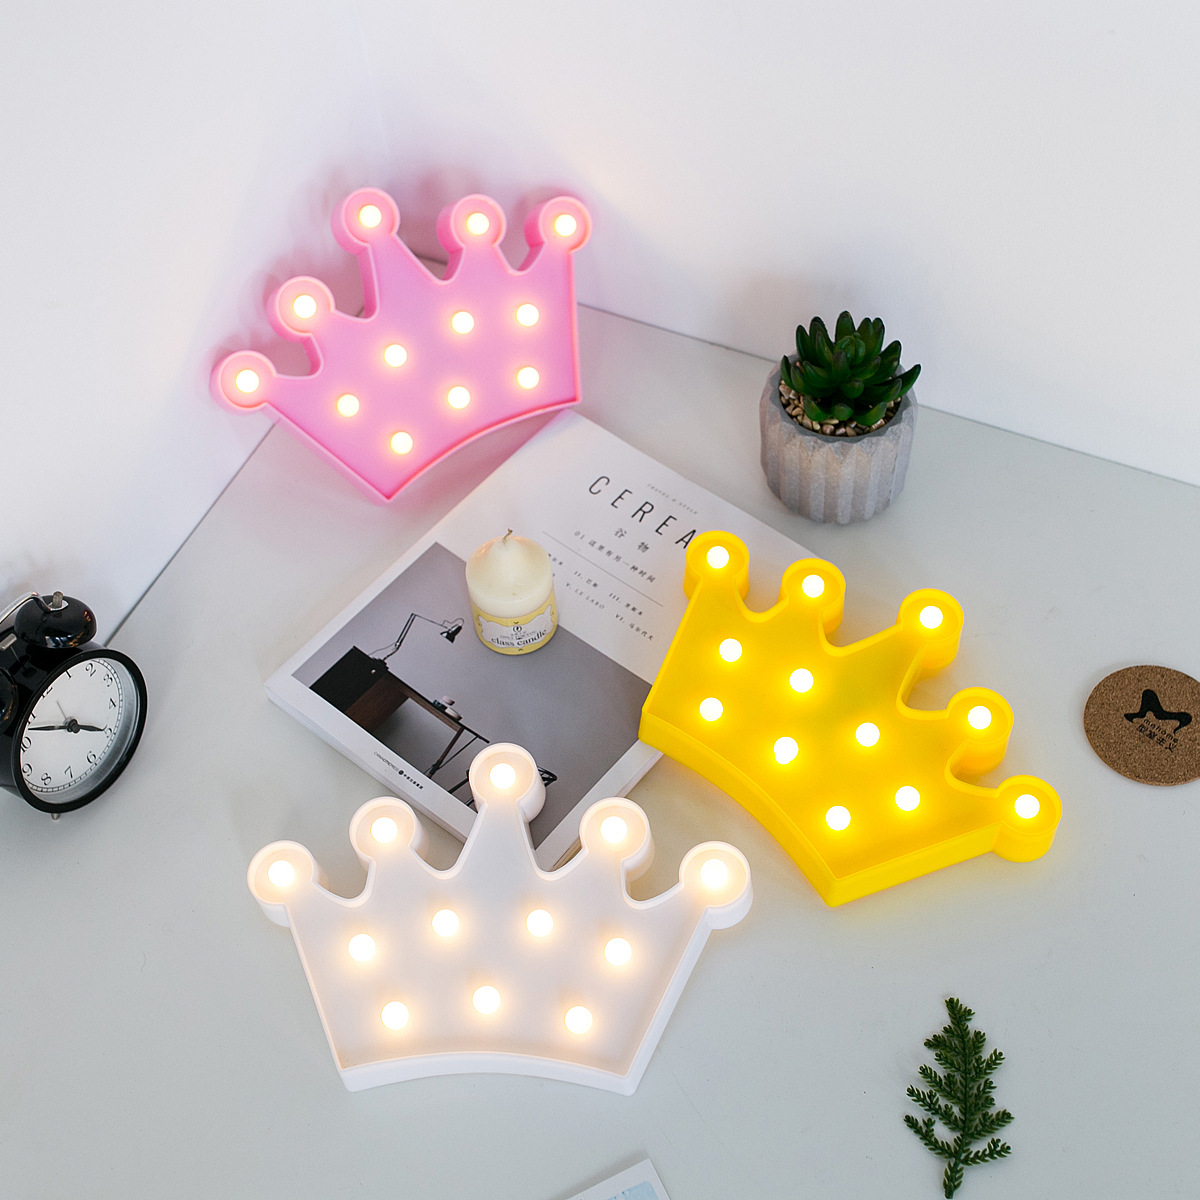 AIMIHUO New crown LED night light wall lamp use 2*AA battery 3 colors warm white crown night light for children room decoration lediary cute dinosaur led night light 3 colors decoration lamp warm white christmas night lights animal bedside lamp for kids